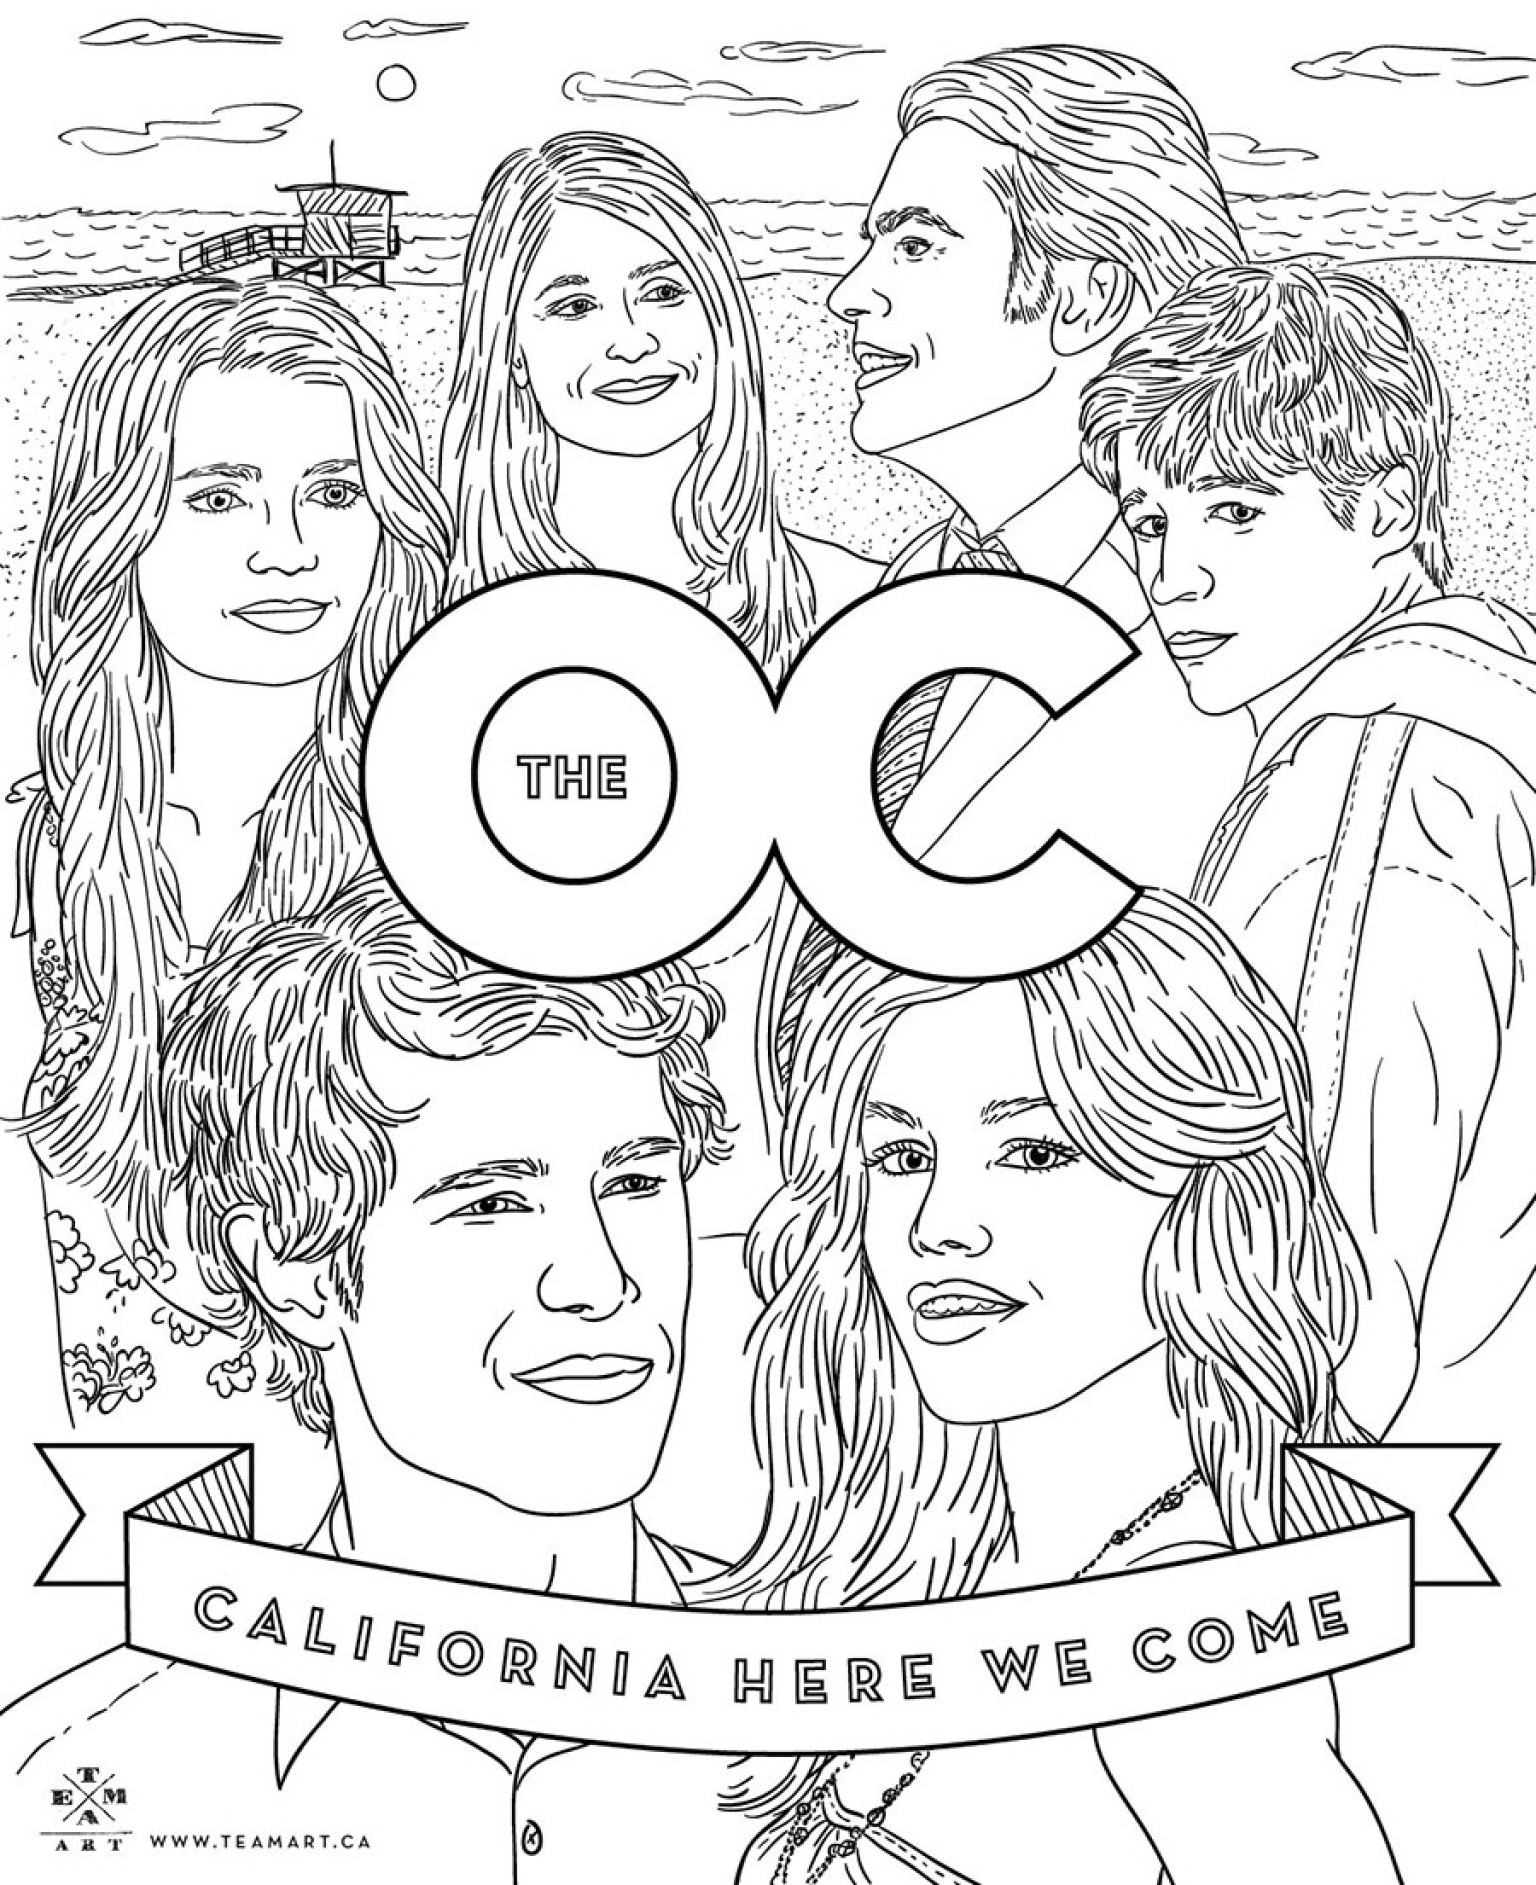 'The OC' Coloring Page: Celebrate The 10 Year Anniversary